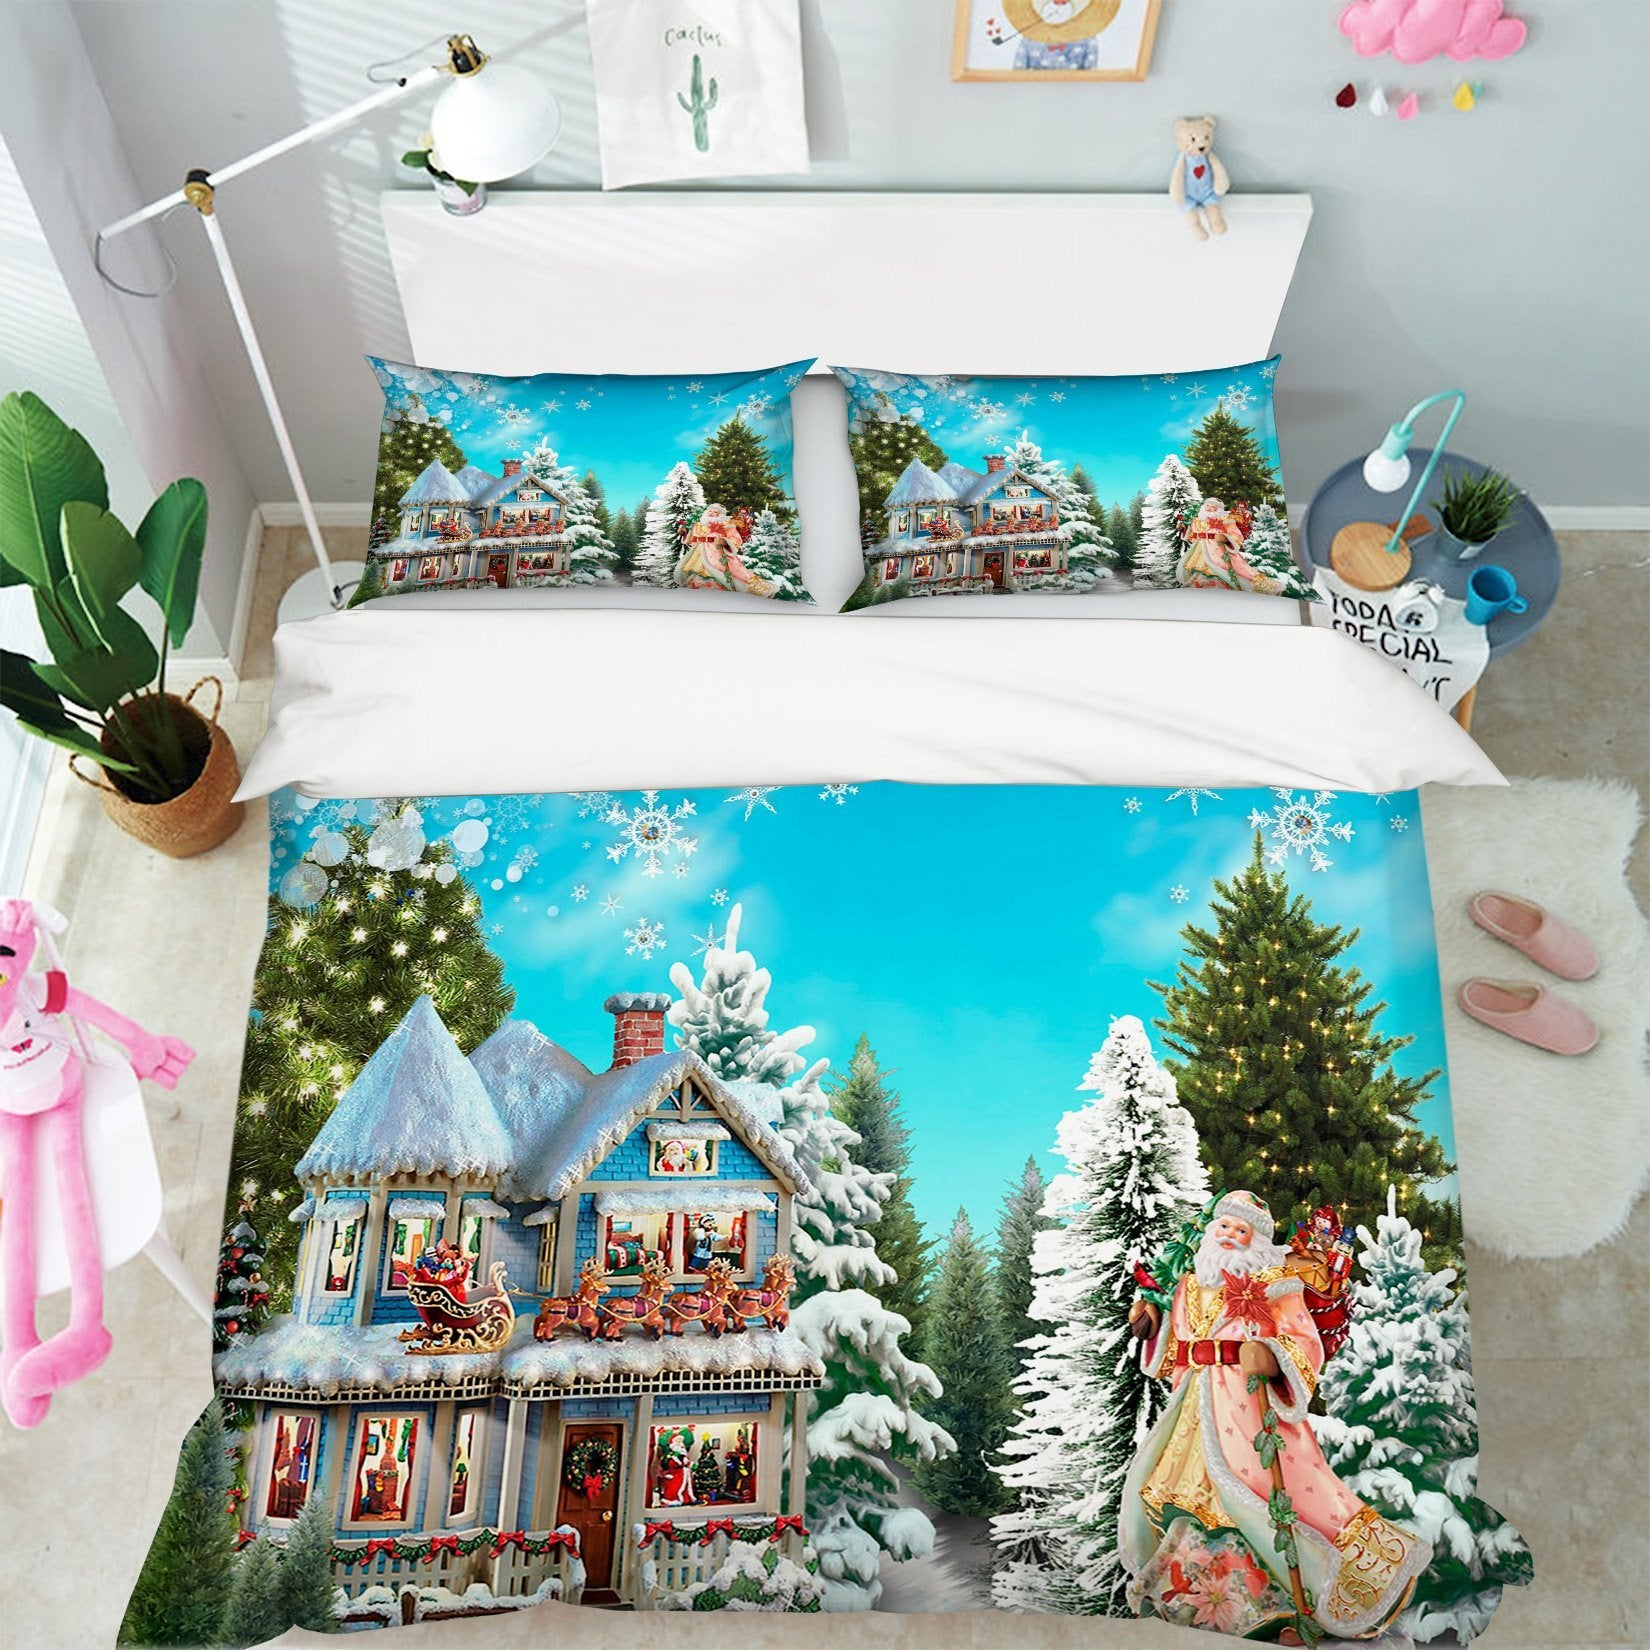 3D Christmas Villa Decoration 50 Bed Pillowcases Quilt Quiet Covers AJ Creativity Home